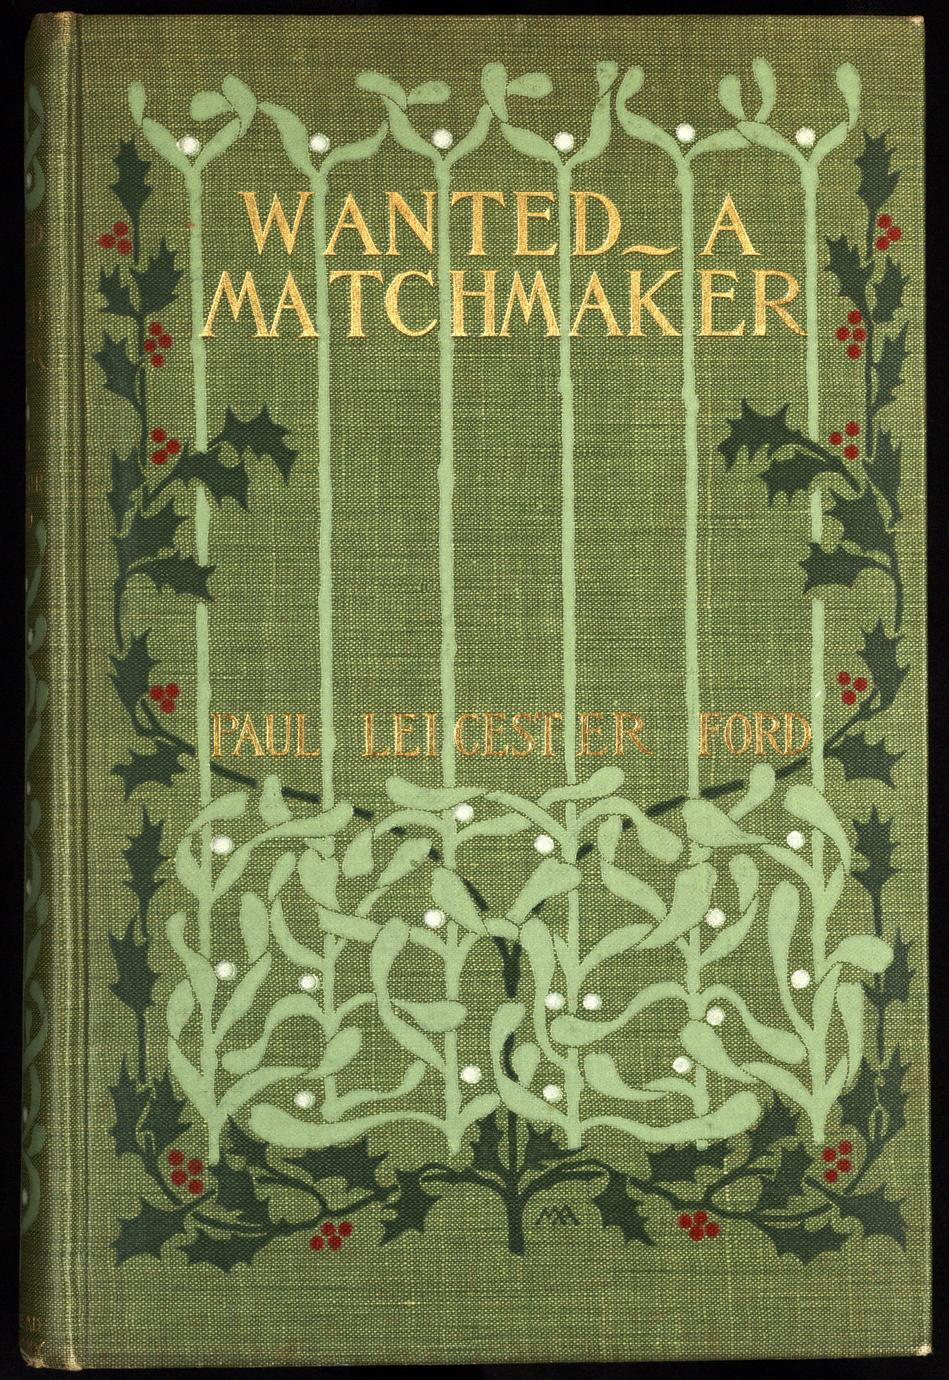 Wanted--a match maker (1 of 4)